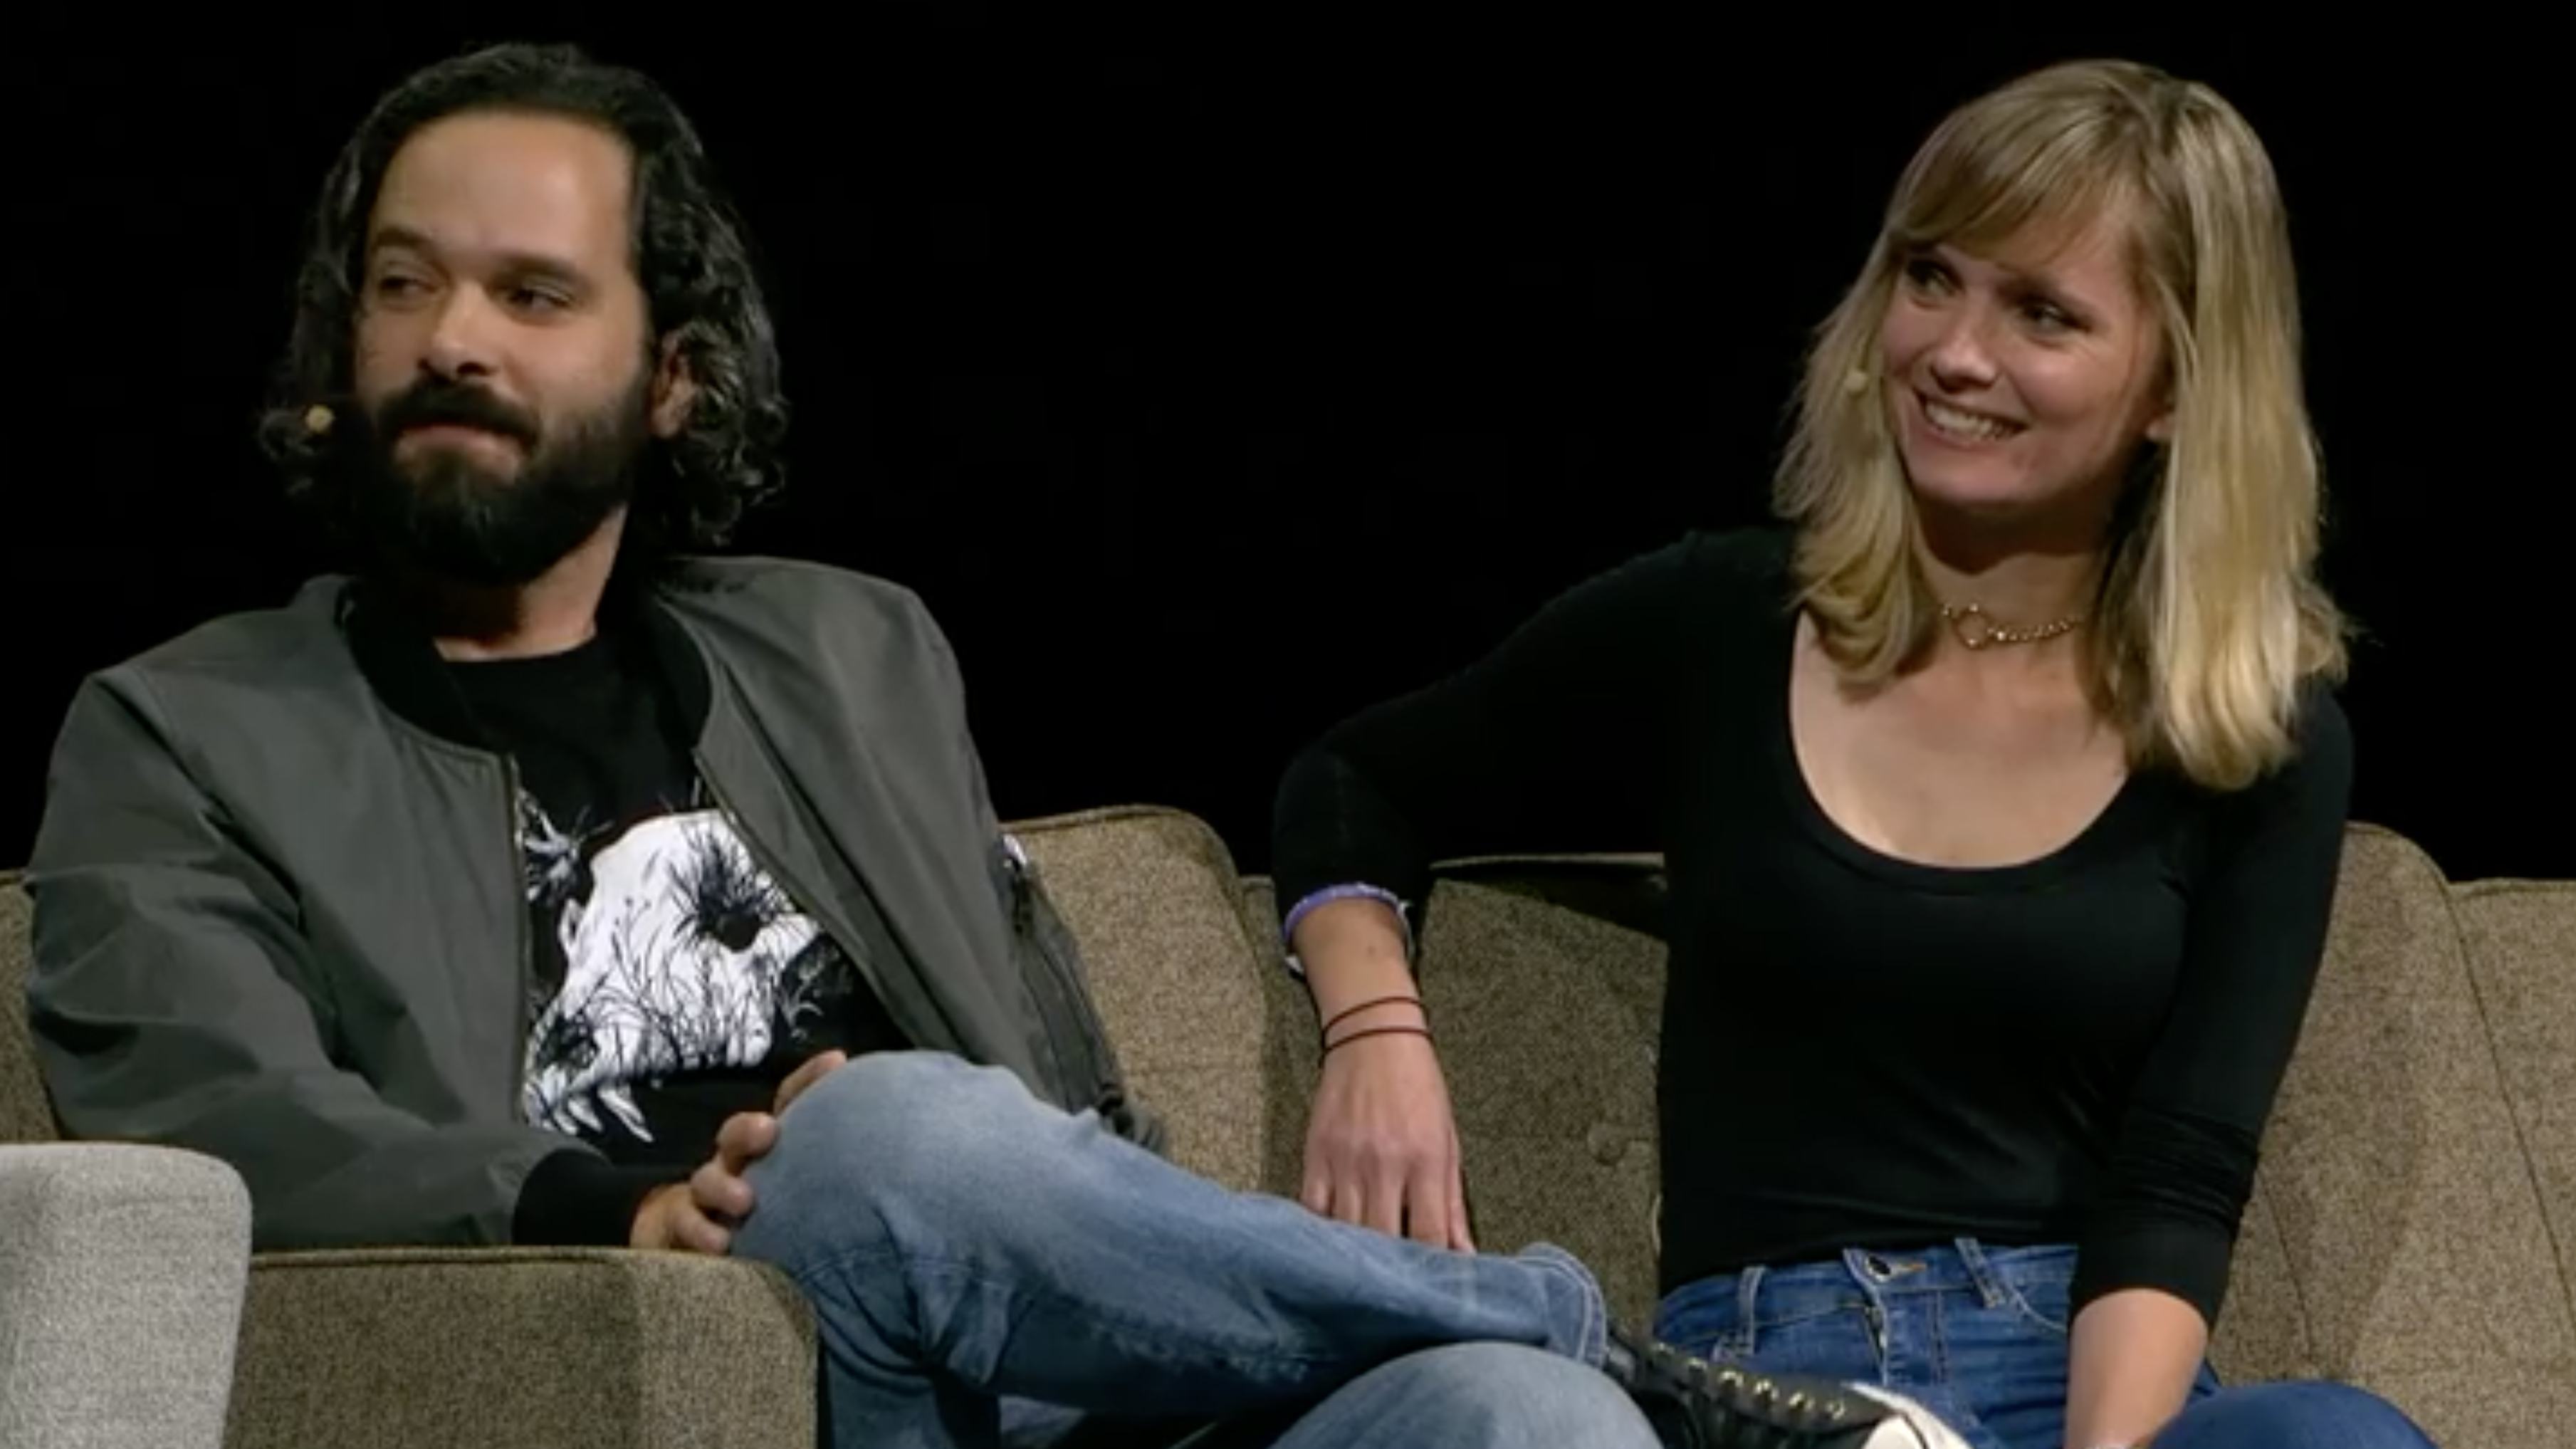 Last Of Us Part II panel at PlayStation Experience 2017